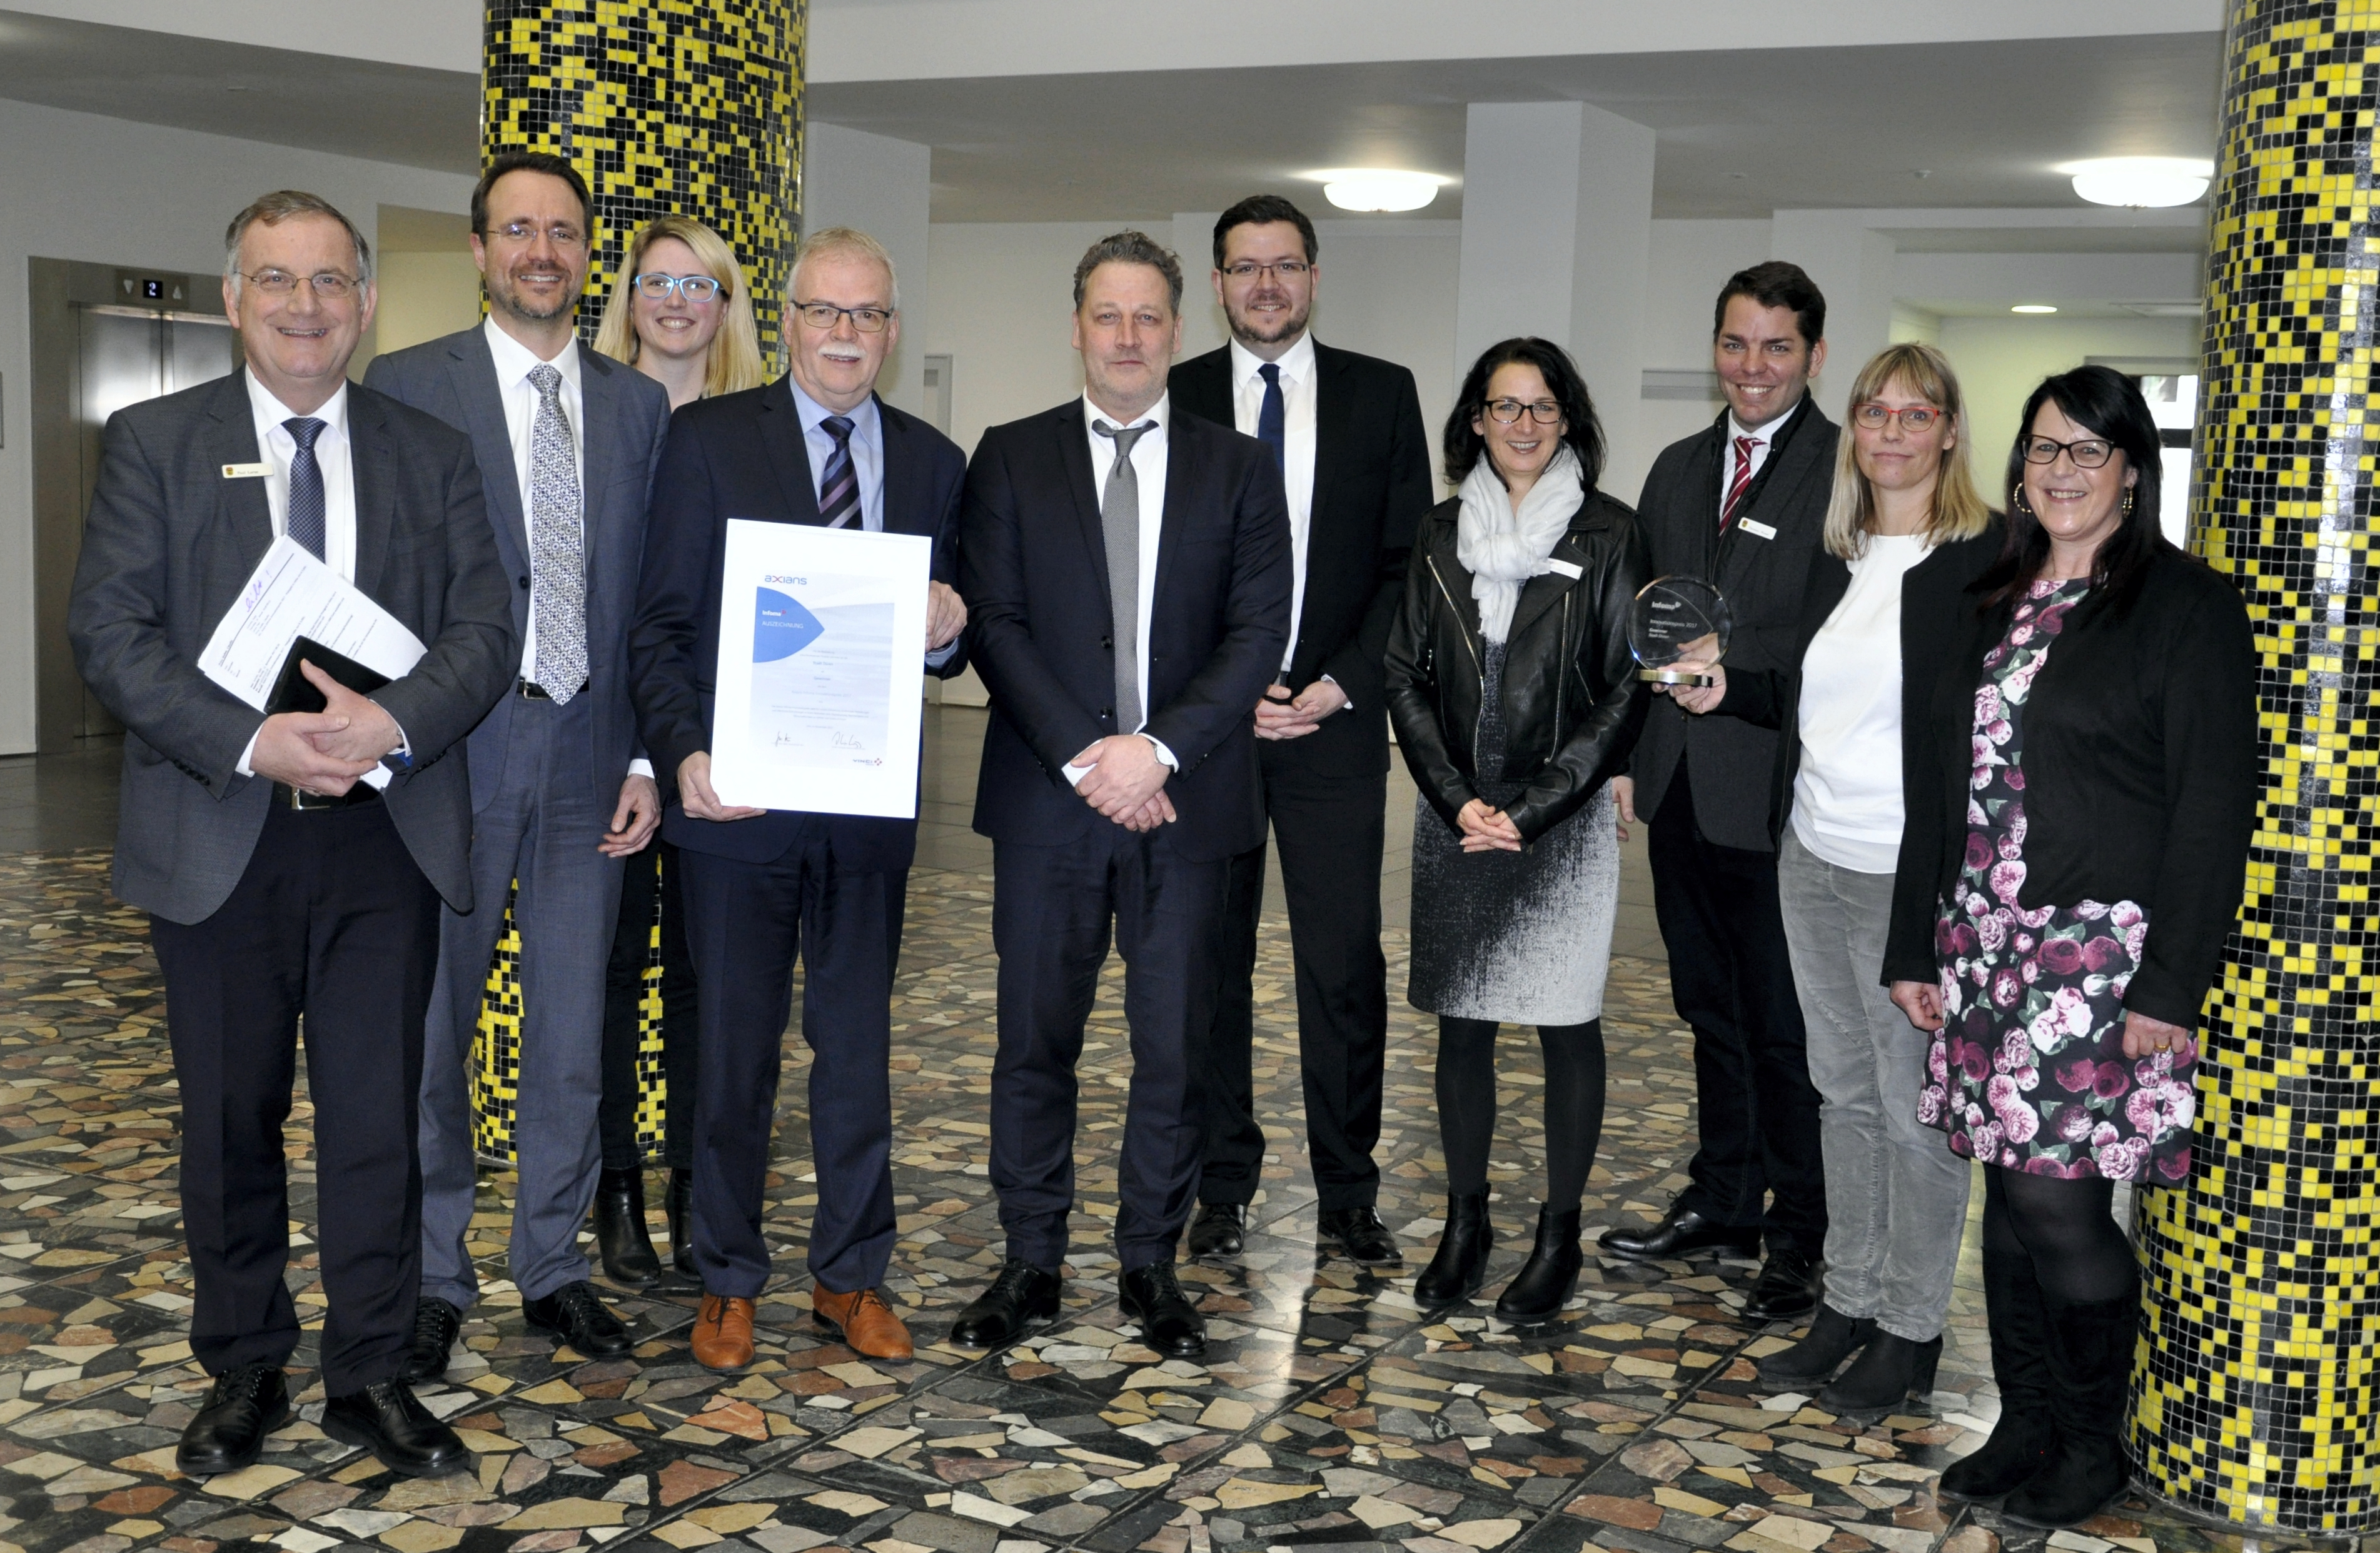 The City of Düren wins Innovation Prize from Axians Infoma for the Second Time